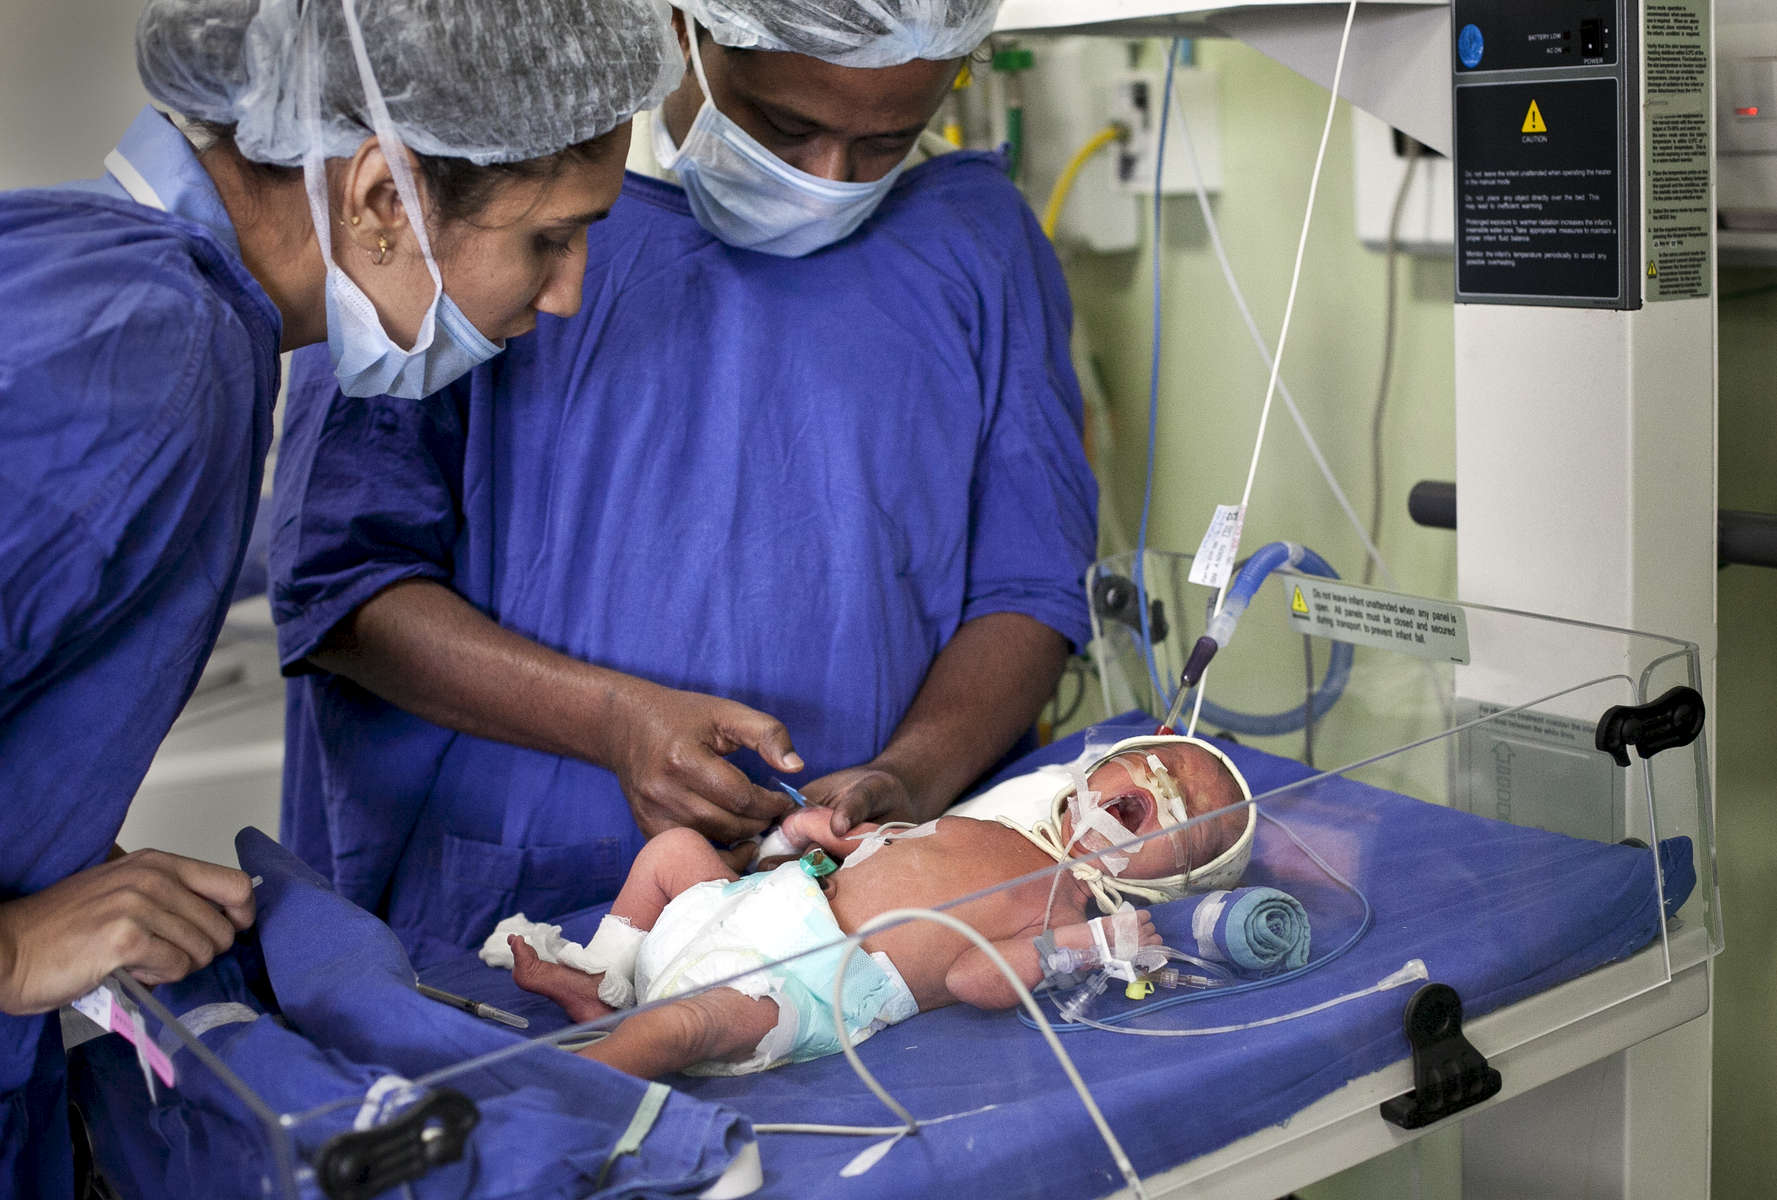 Newborn babies that were born at the Akanksha IVF center are looked after in the Neonatal Intensive Care Unit (NICU) of Zydus hospital.